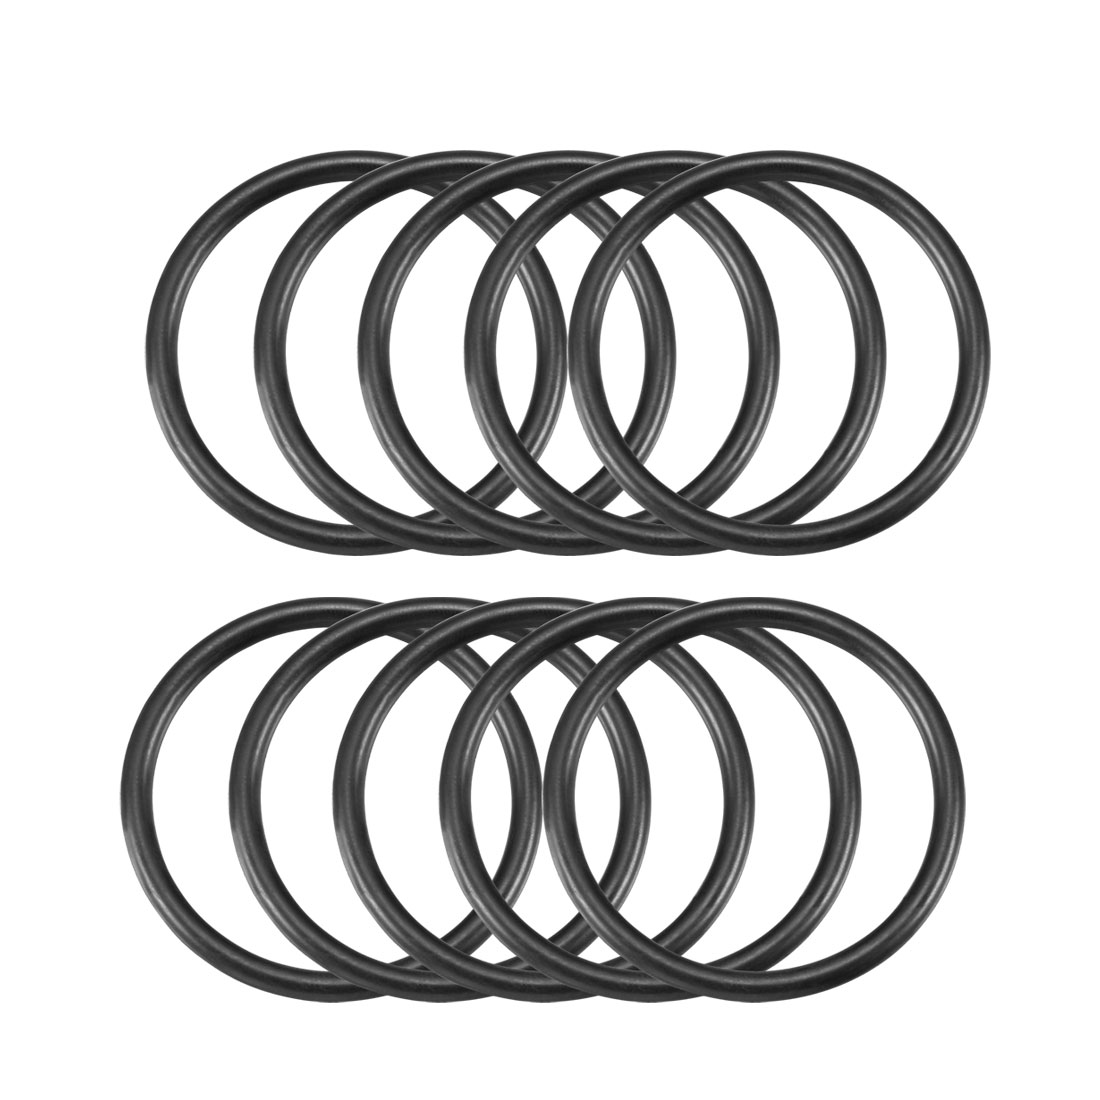 4mm x 52mm Black Nitrile Rubber Sealing O Ring Seal Washer Grommets 10 Pcs